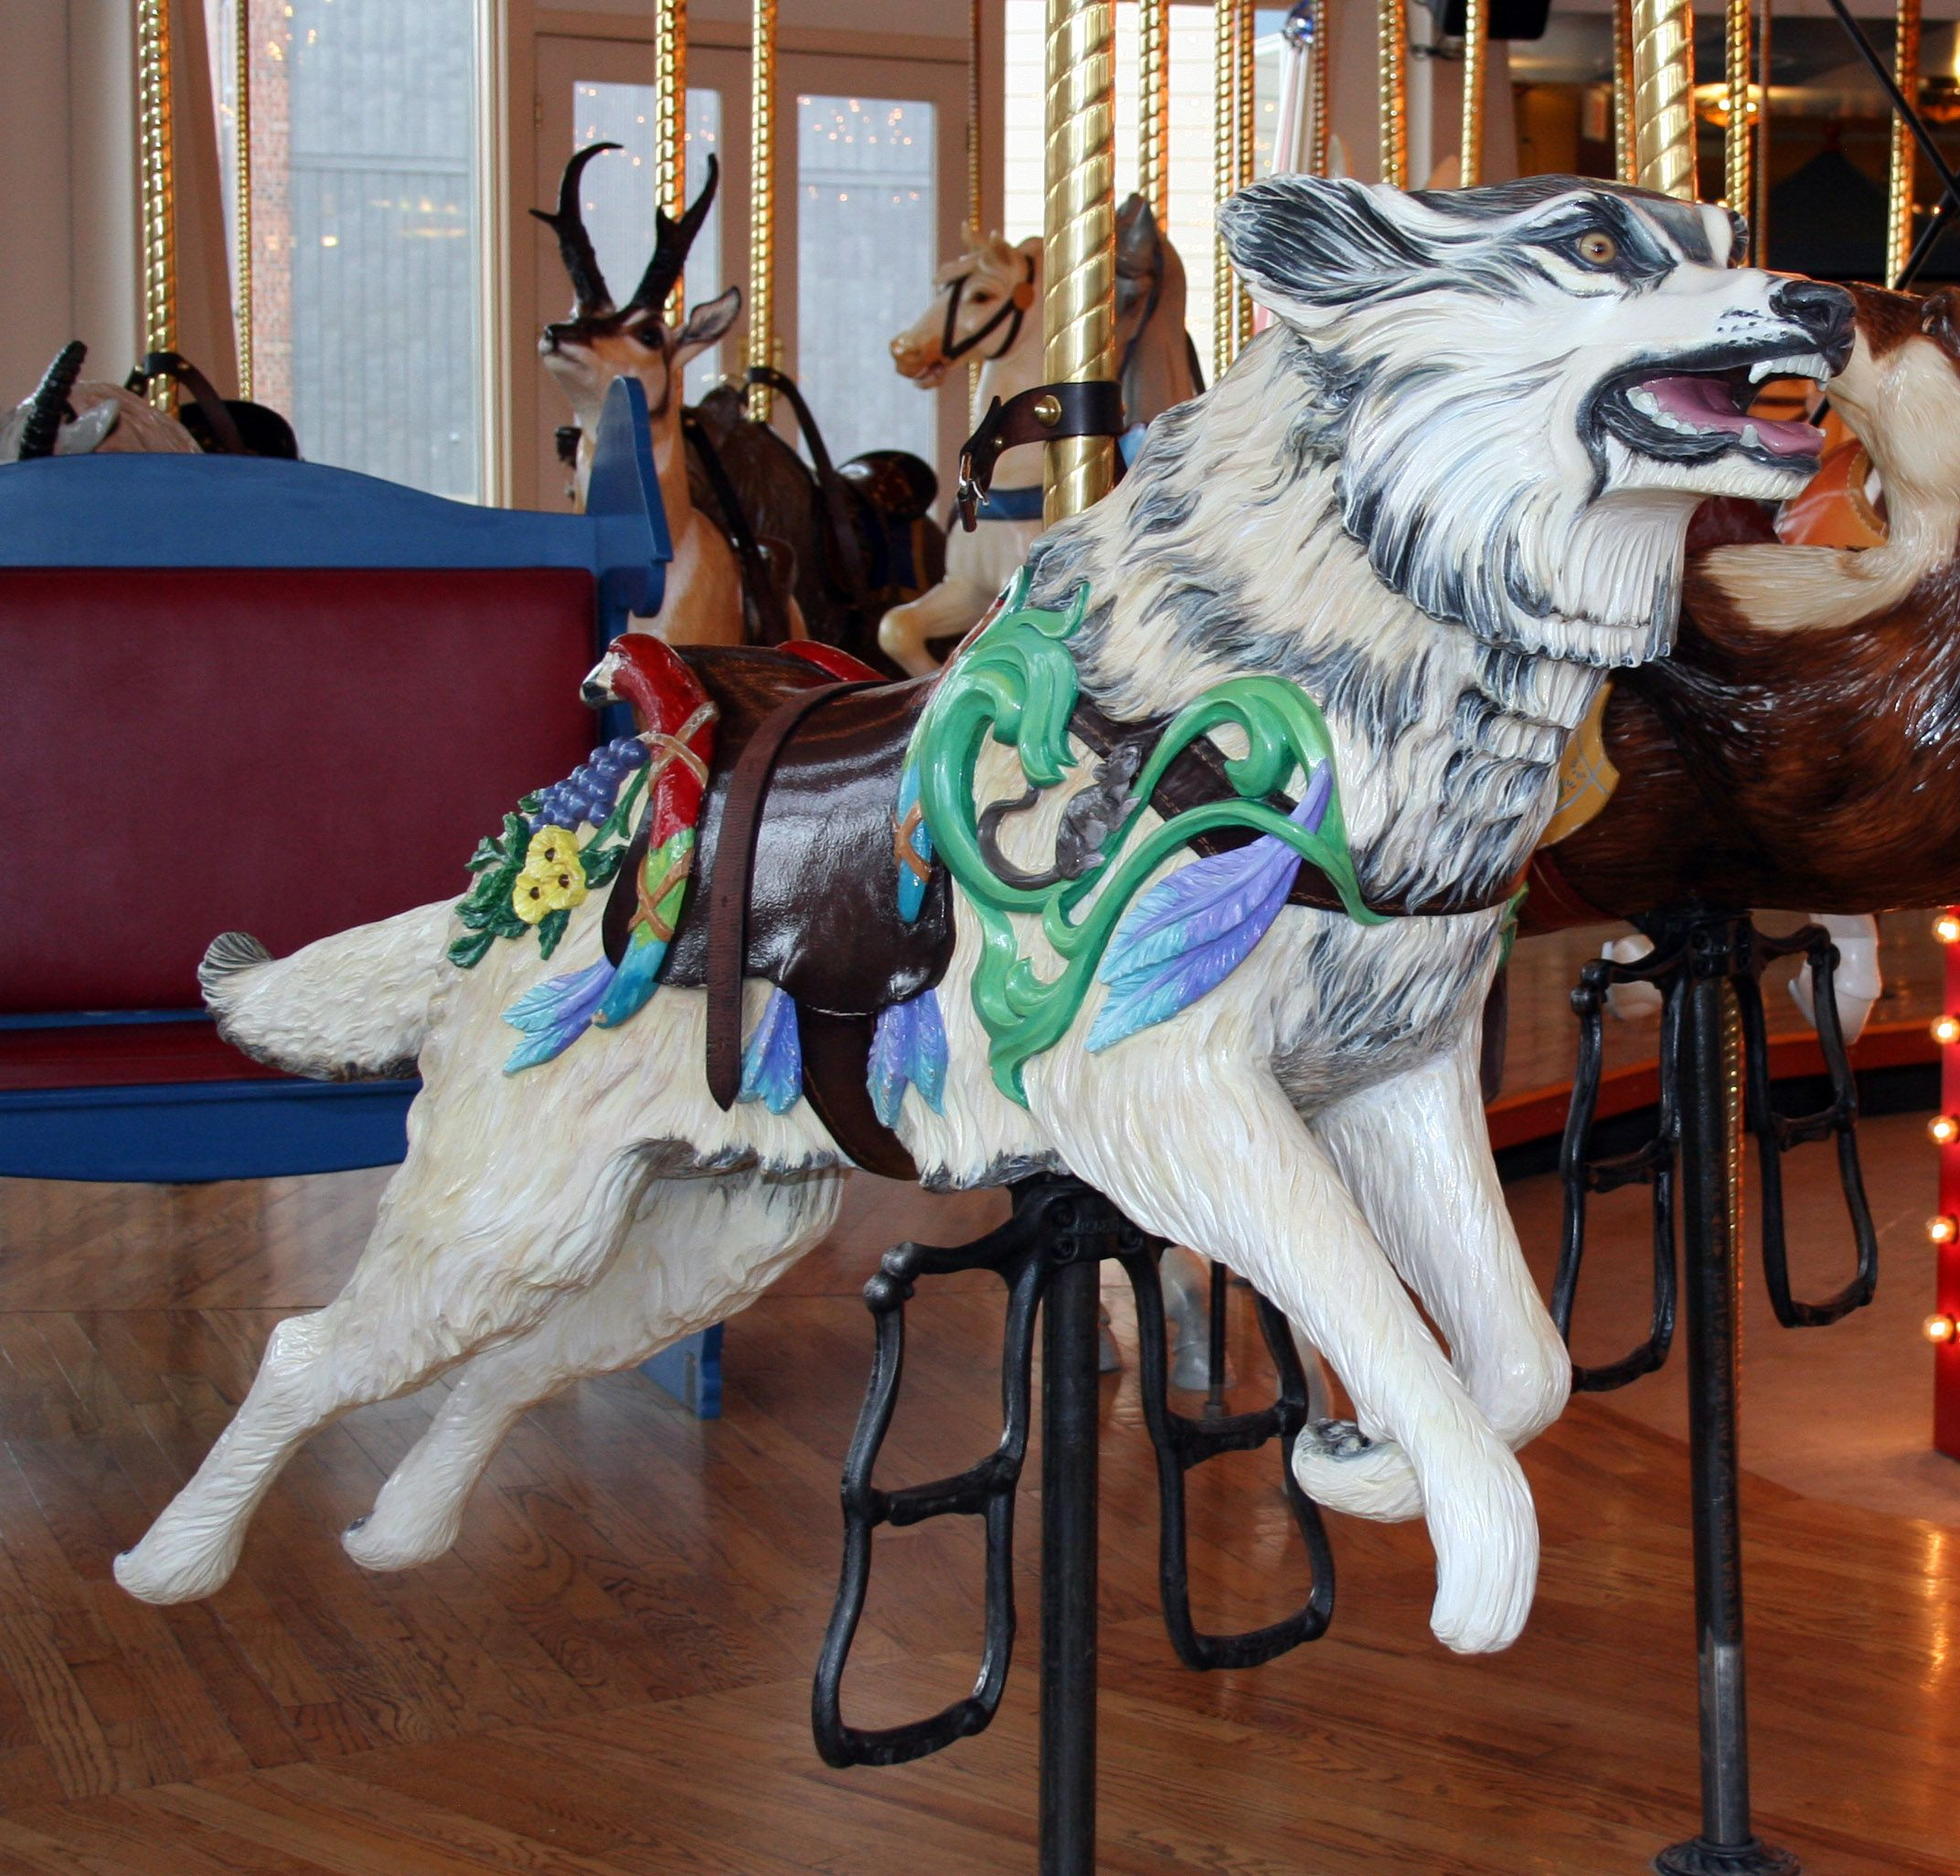 National carousel association denver zoo carousel african wild dog - Wolf On The Great Plains Carousel In Helena Mt Seems A Little Ferocious For A Fun